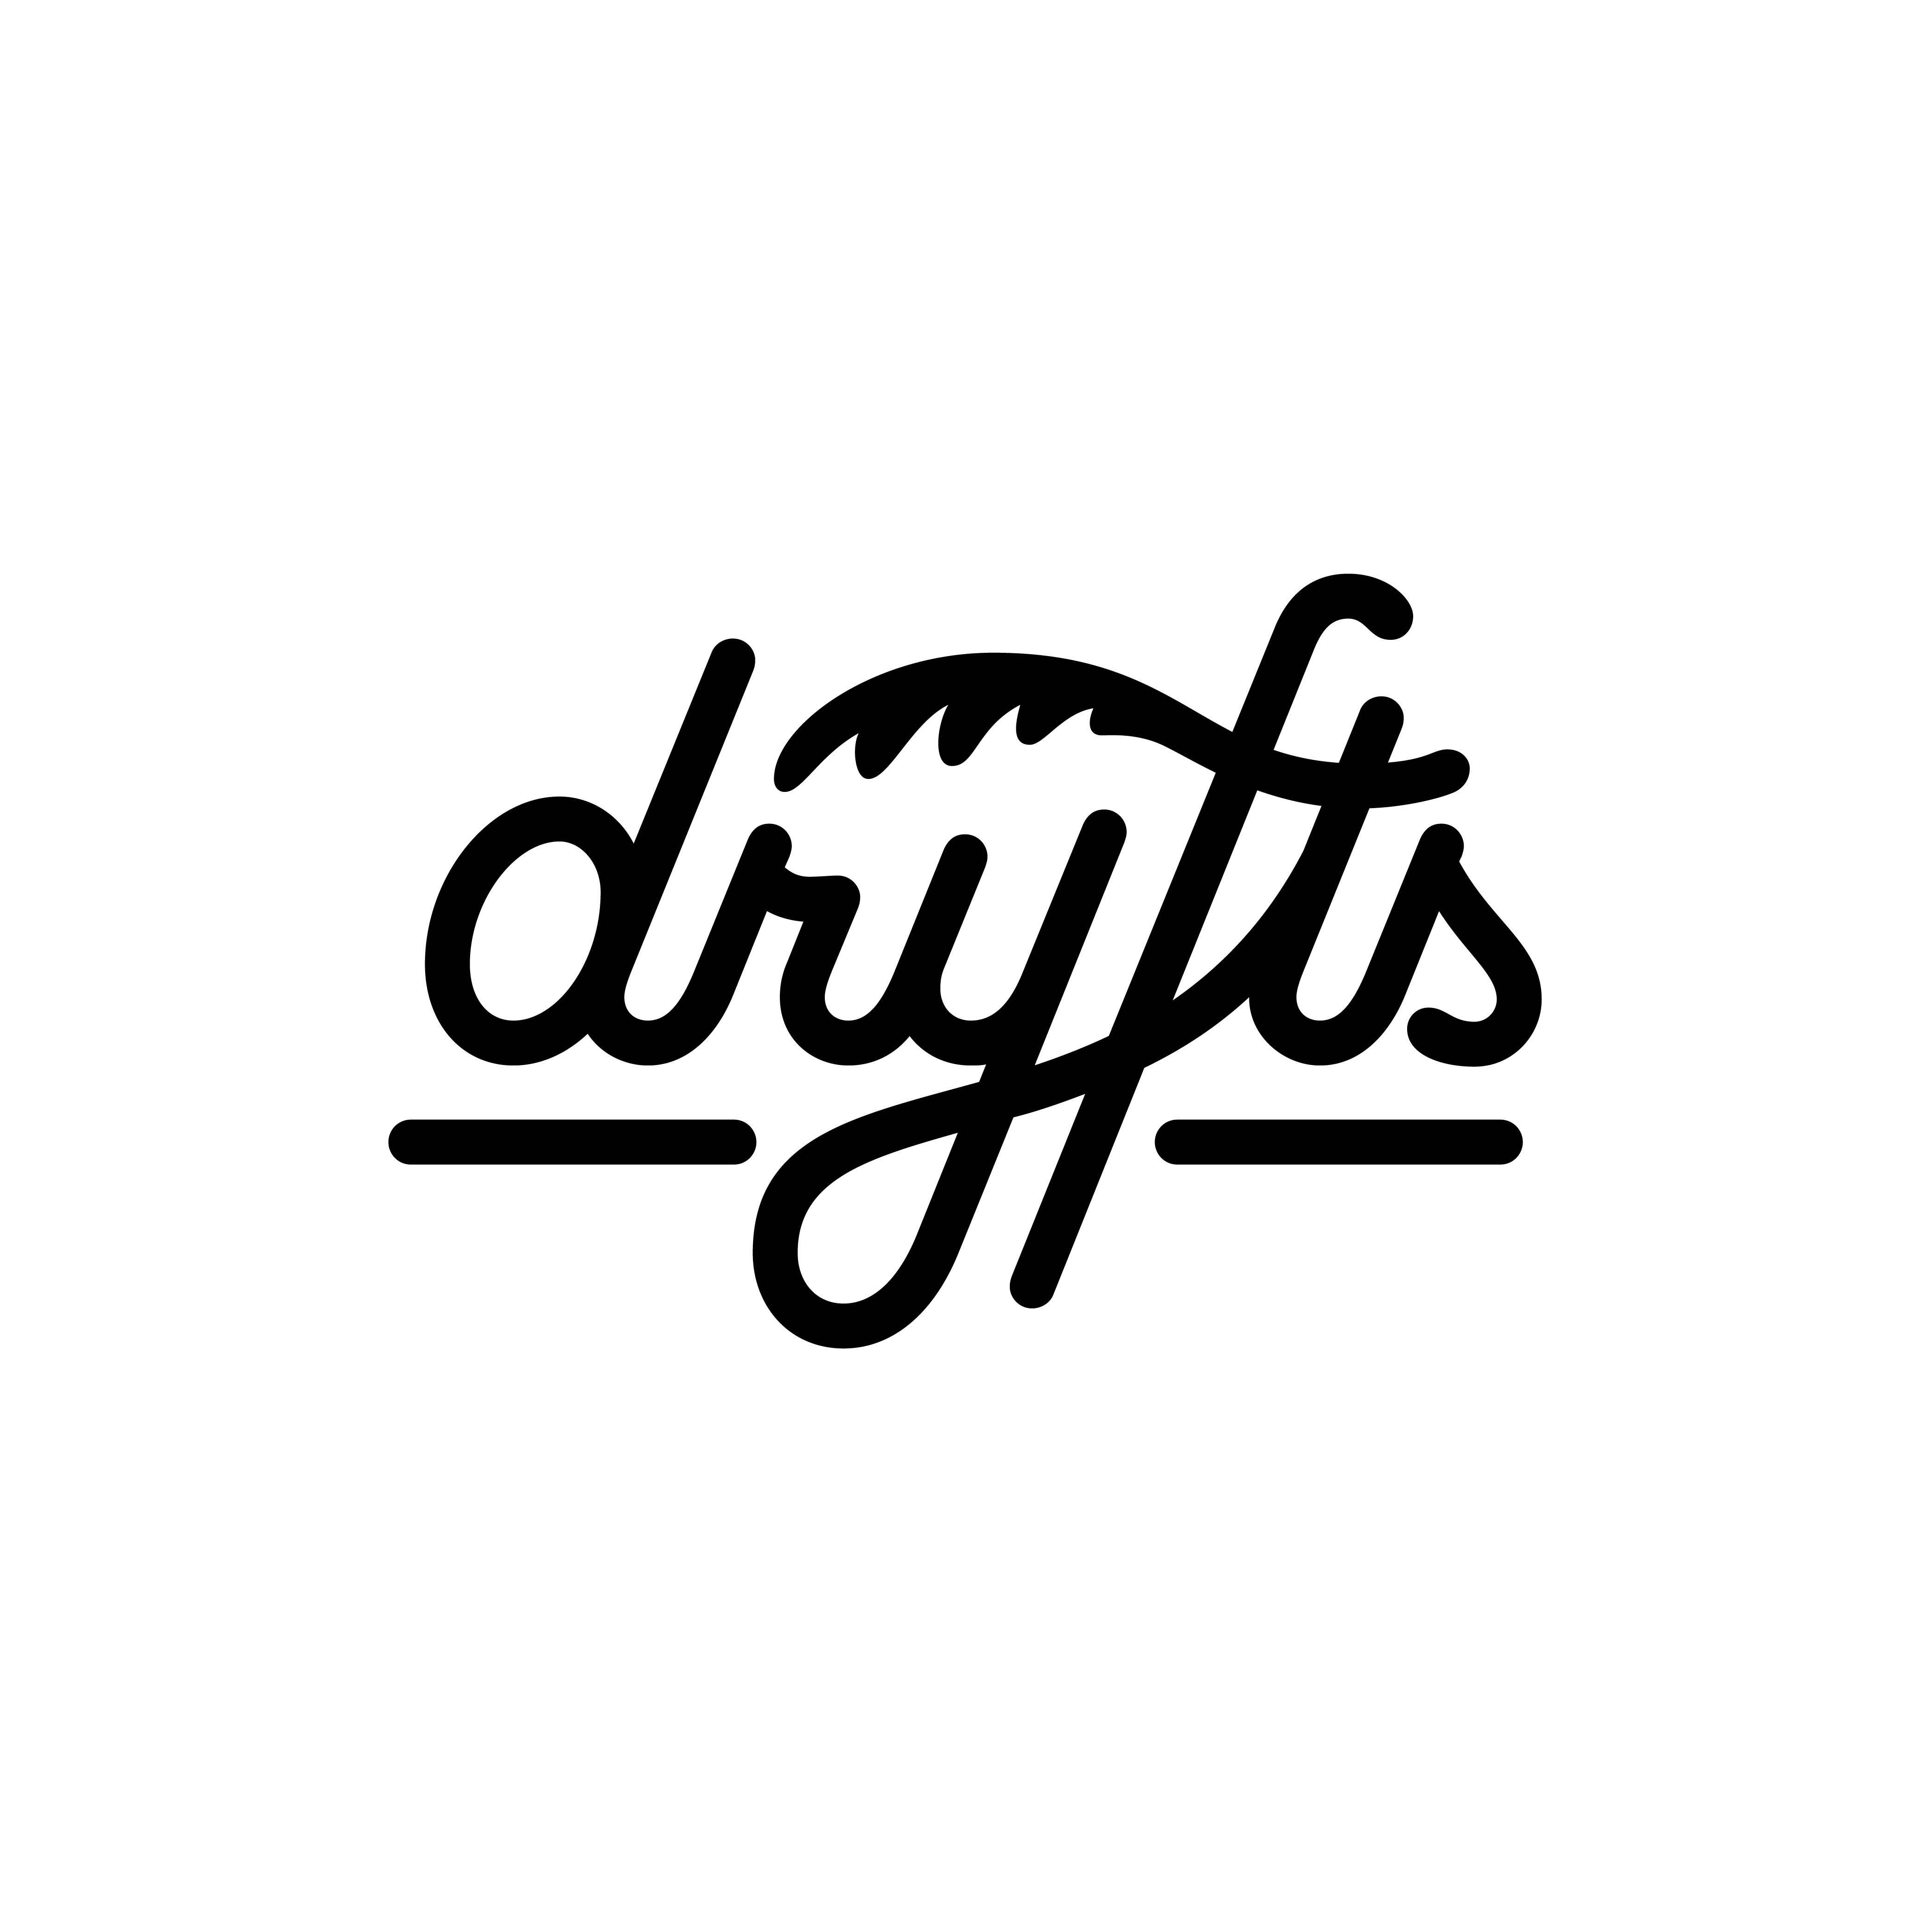 chilled sneaker start-up looking for a cool new logo.